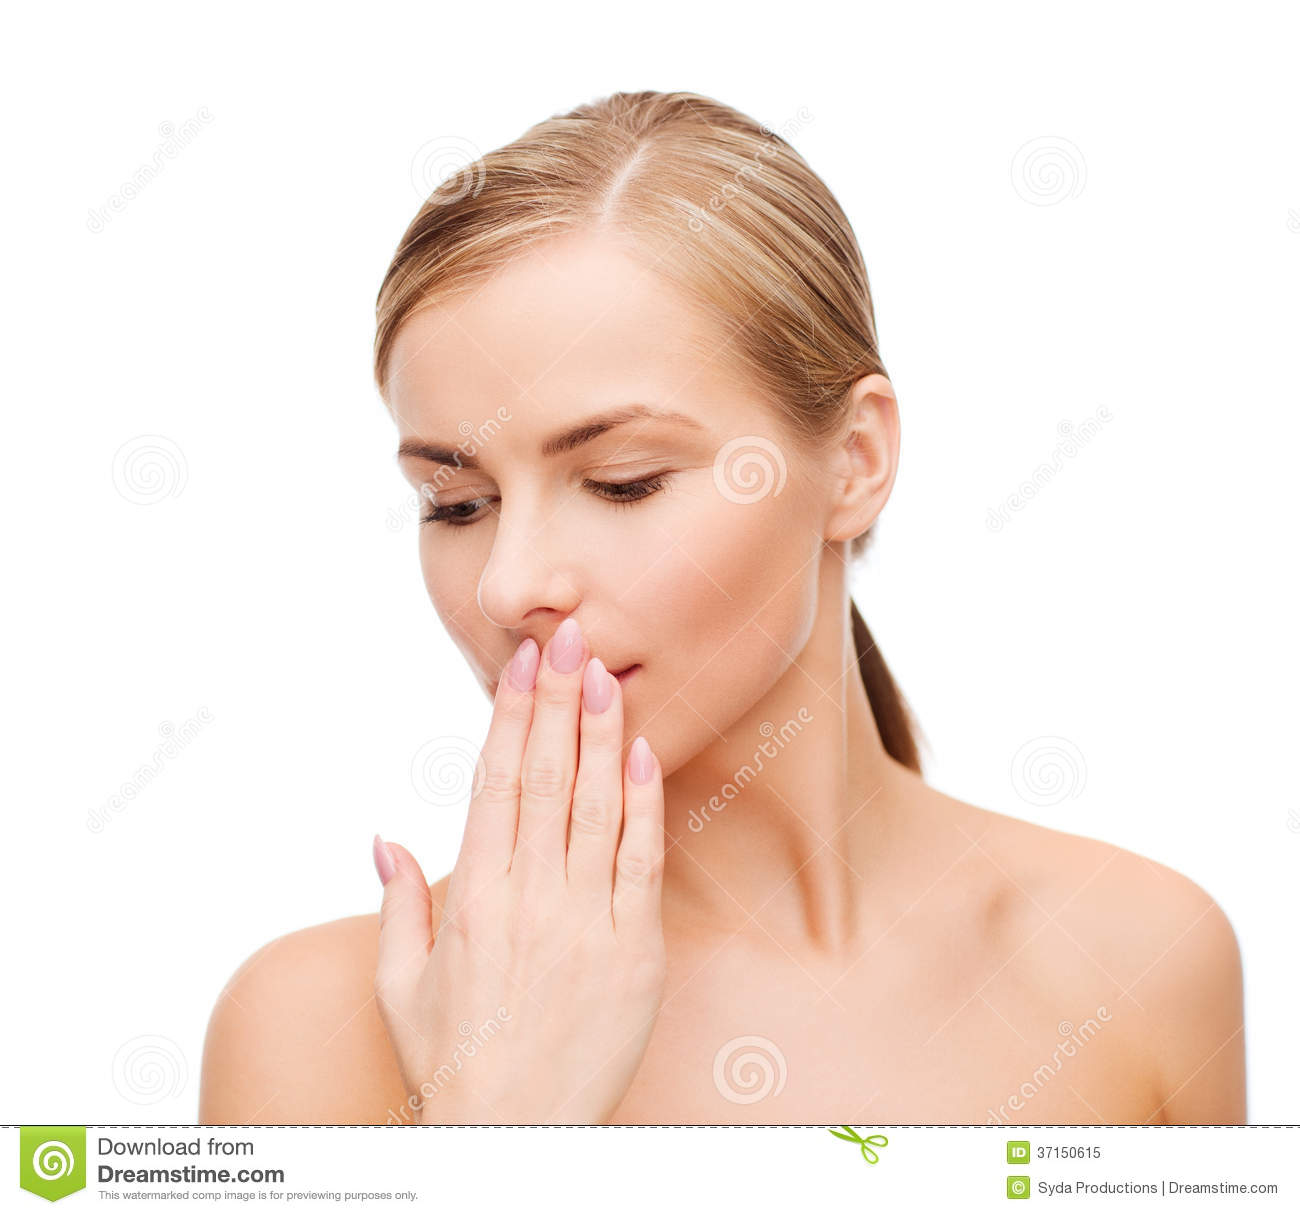 how to avoid bad smell from mouth naturally